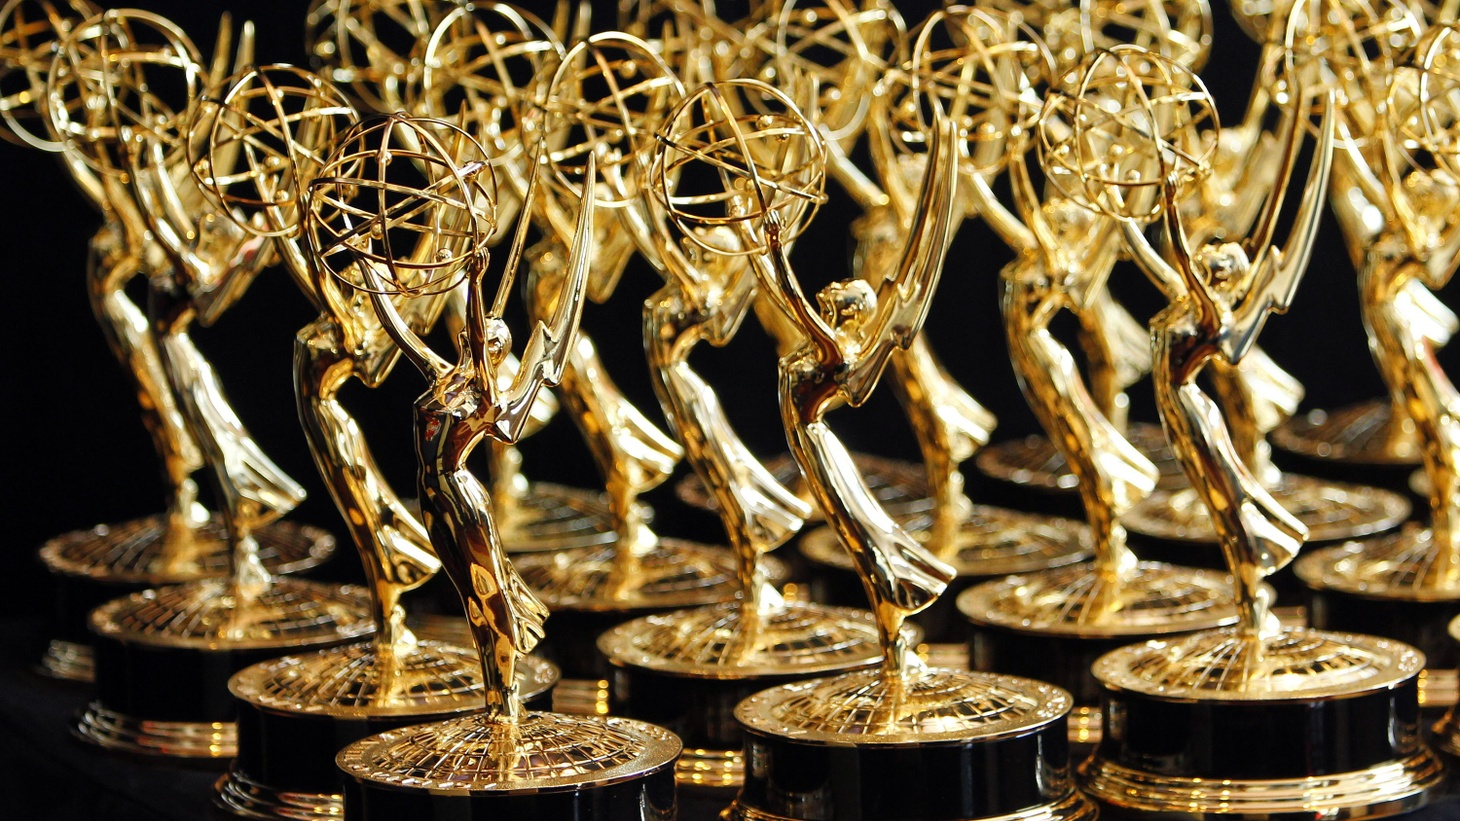 Dozens of Emmy Awards are lined up on the trophy table in the media center at the 62nd annual Primetime Emmy Awards in Los Angeles, California, August 29, 2010.